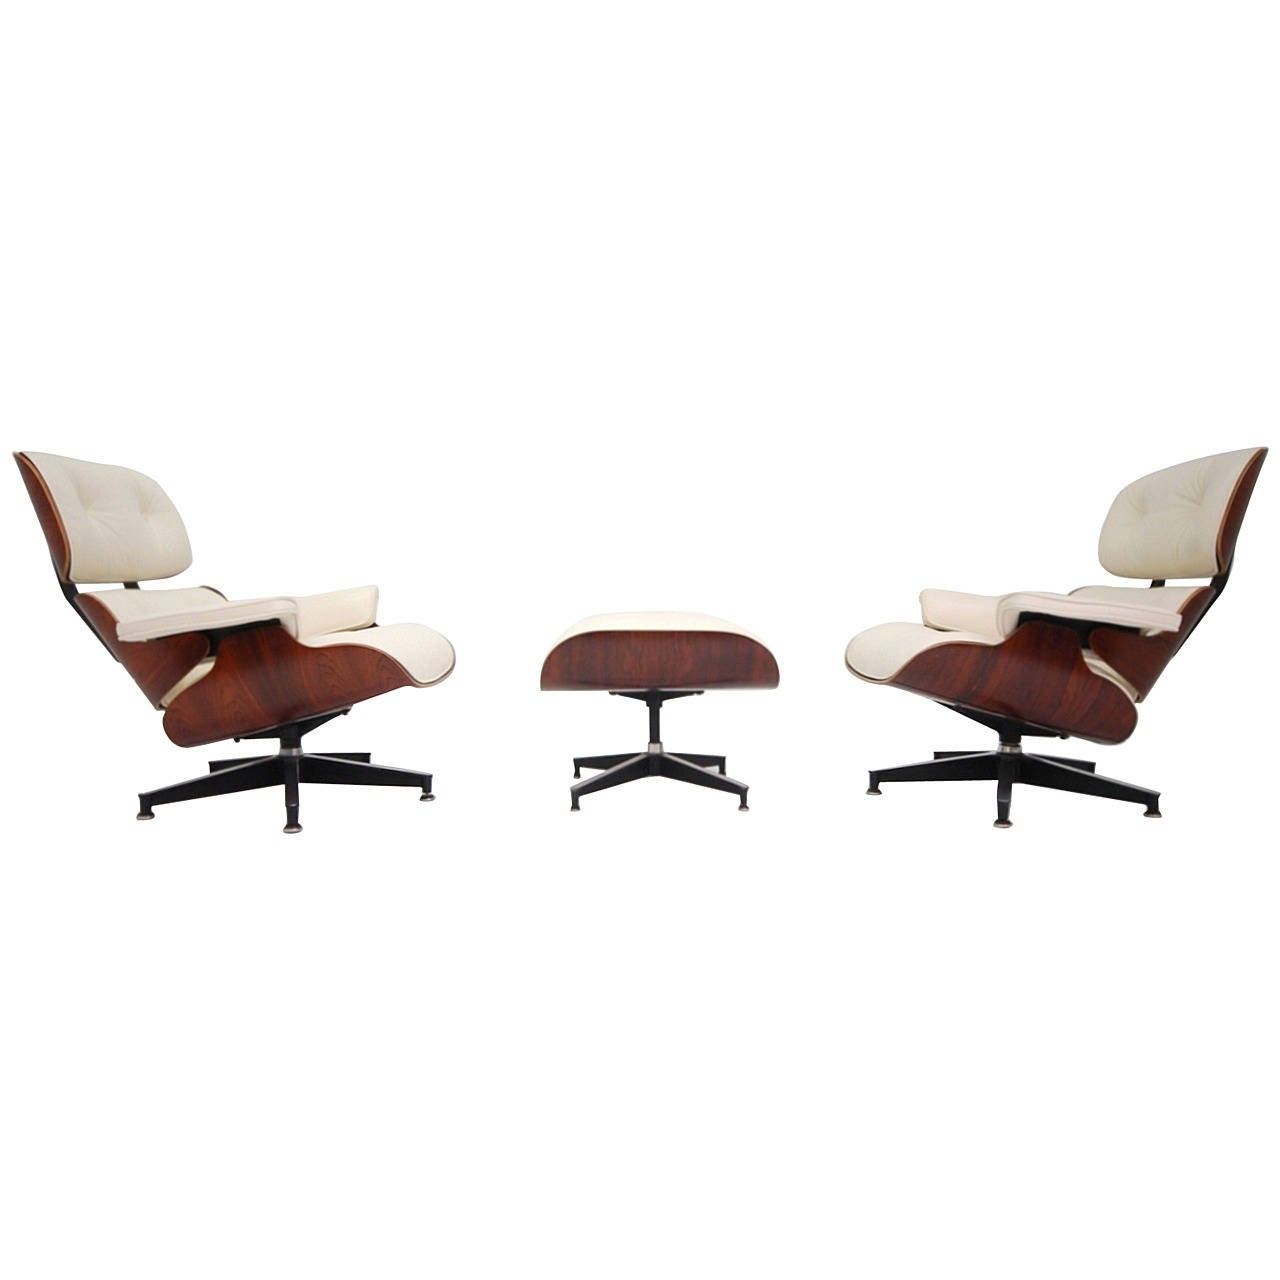 Vintage Rosewood Eames Lounge Chair With New OffWhite Leather - White leather lounge chair